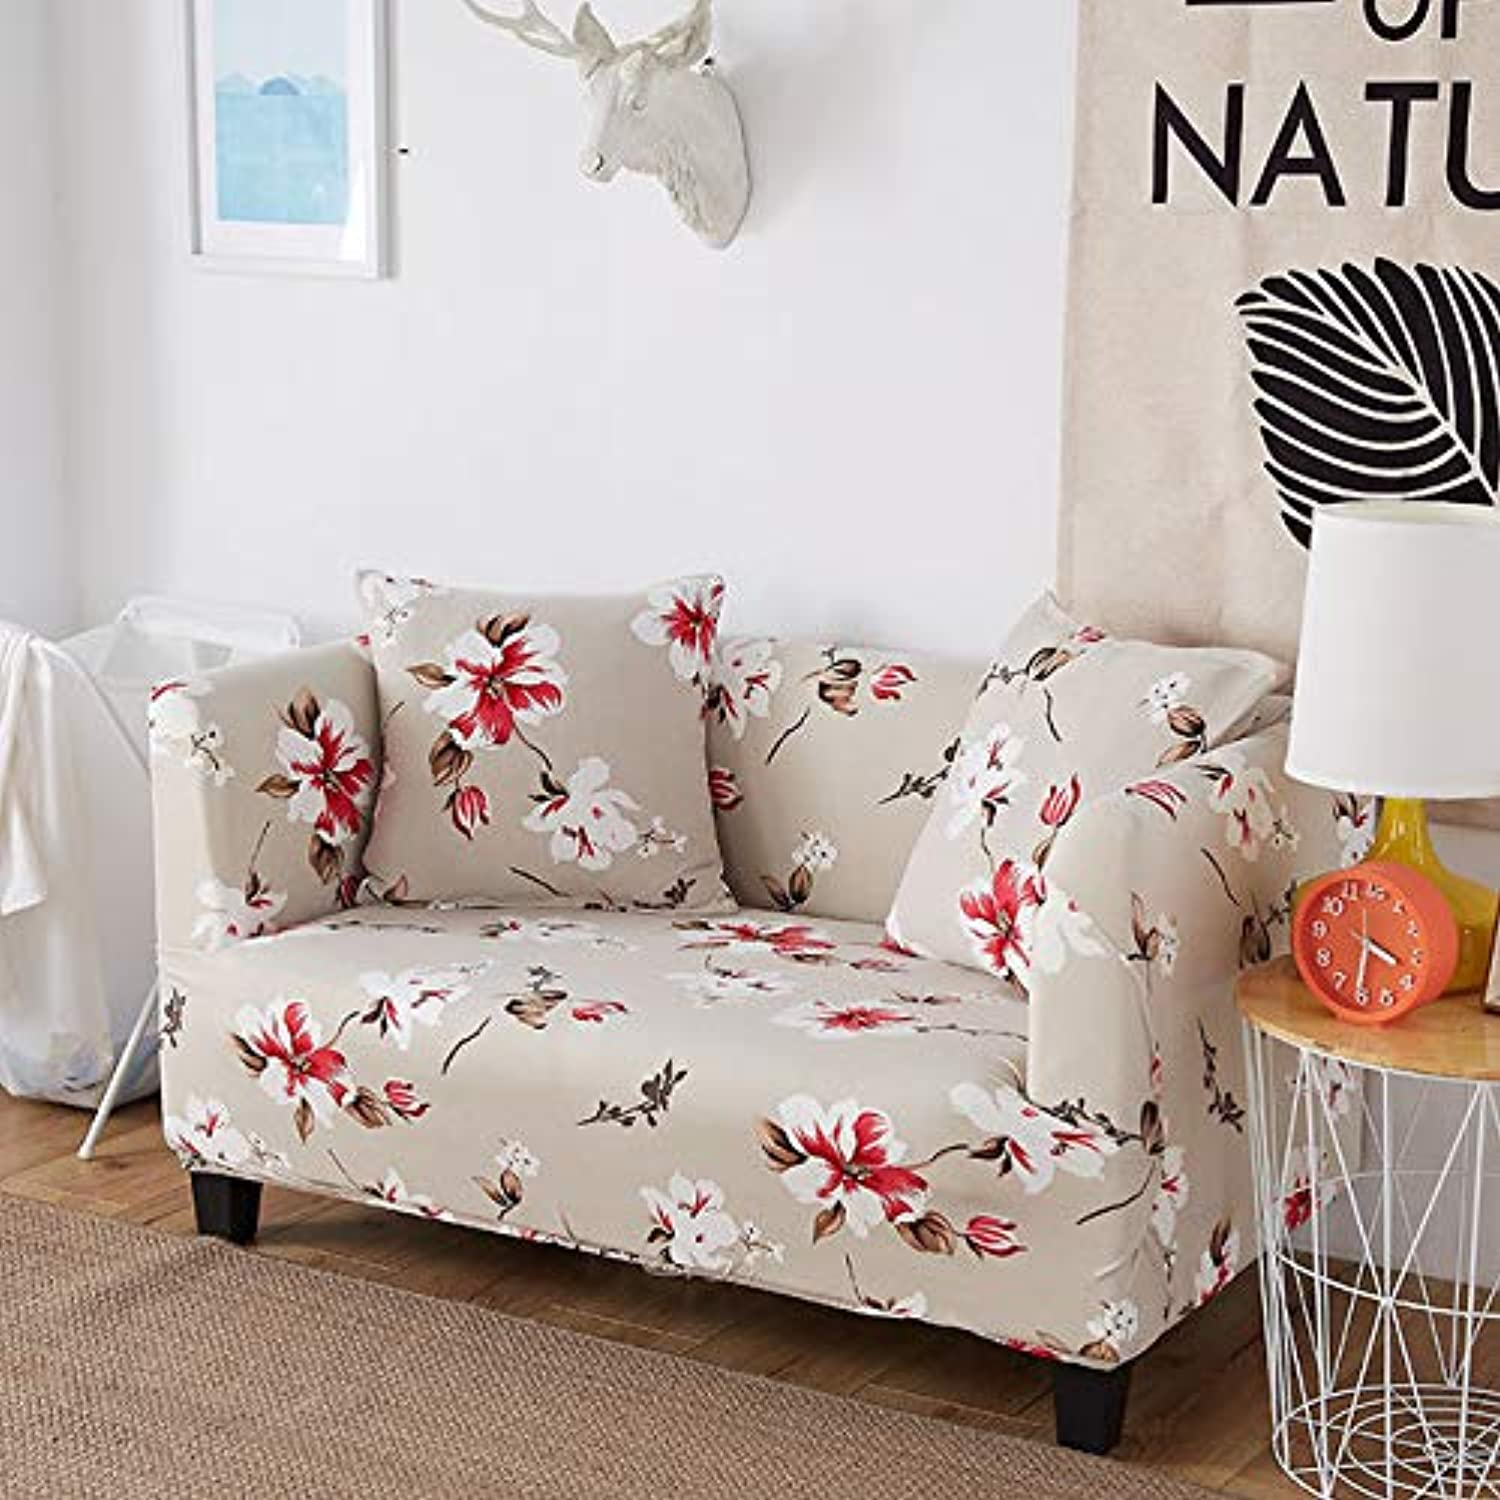 Slipcover Floral Sofa Cover Tight Wrap All-Inclusive Slip-Resistant Corner Cover Sectional Elastic One Two Three Four Seat 58211   F, one seat